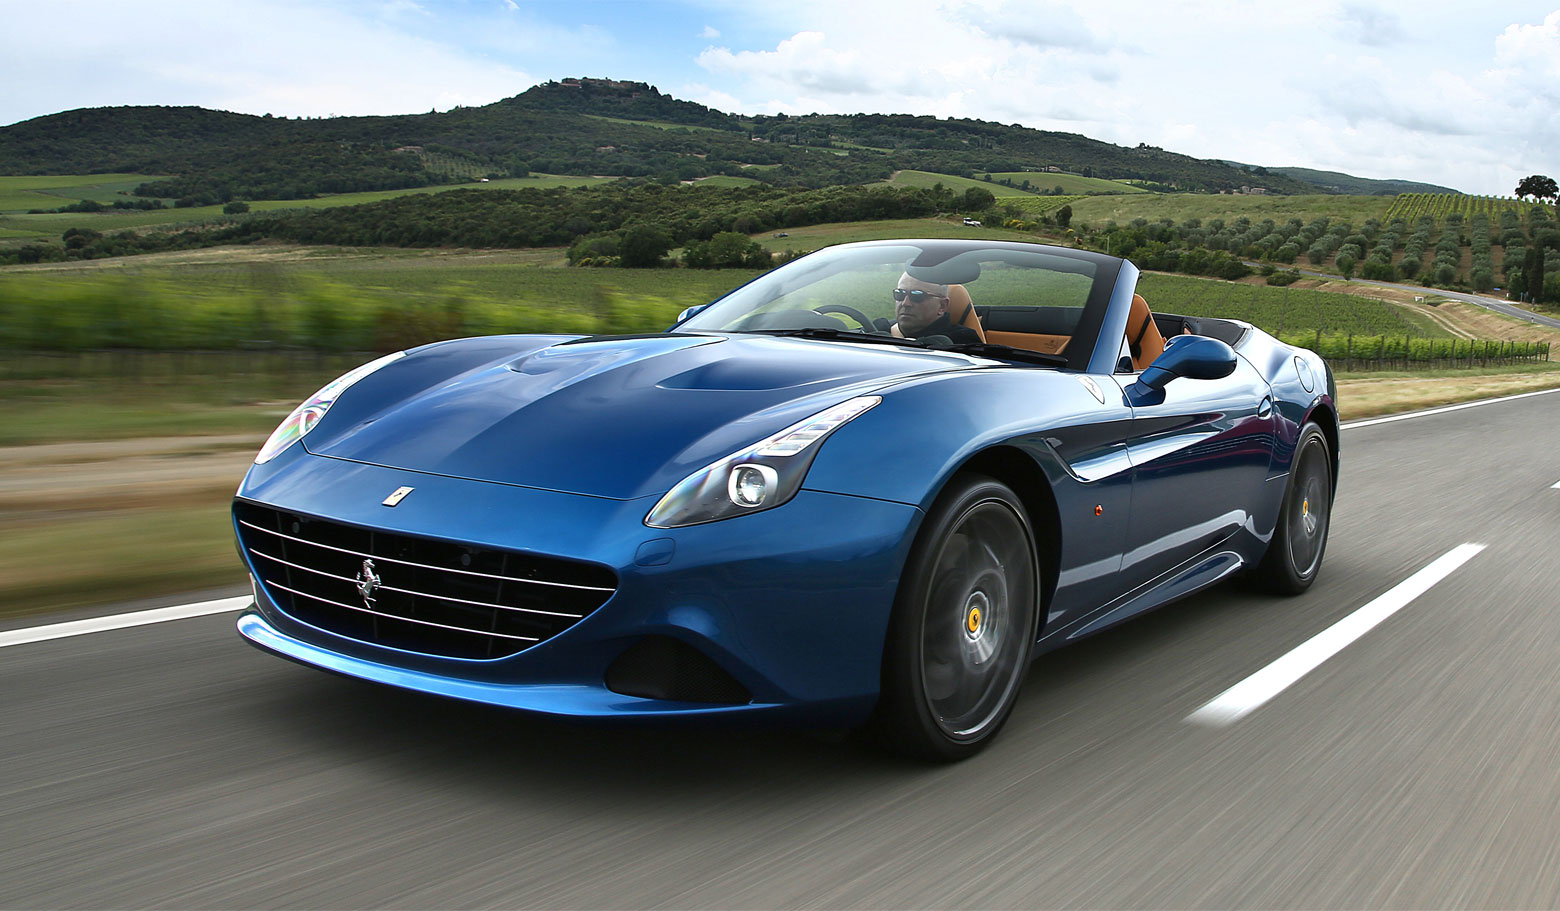 2016 ferrari california t review gtspirit rh gtspirit com